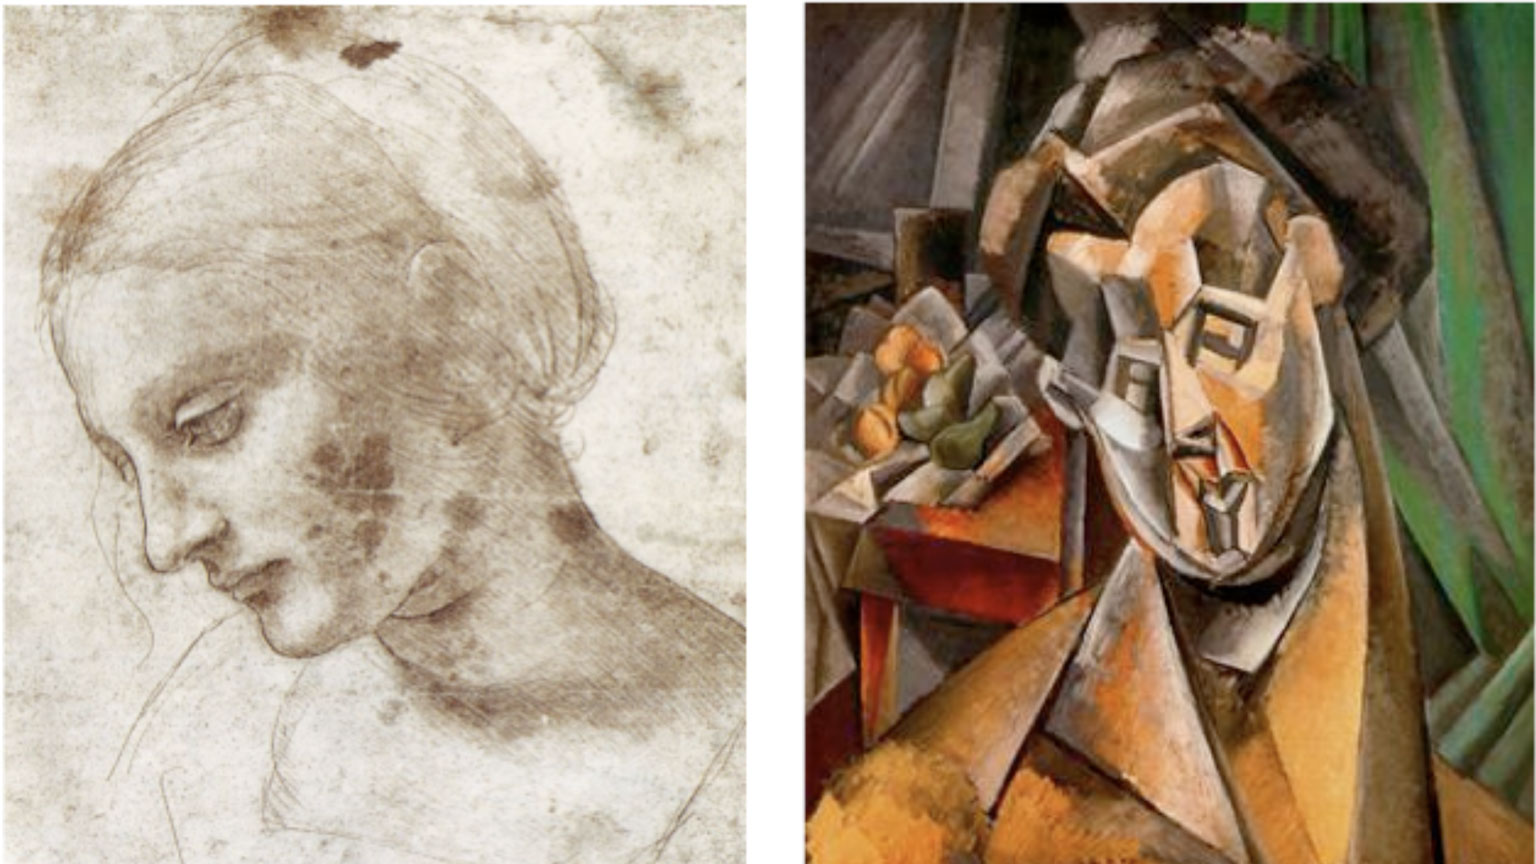 Two pieces of art portray the same face of a woman, one using realist style, and the other using abstract geometric style.